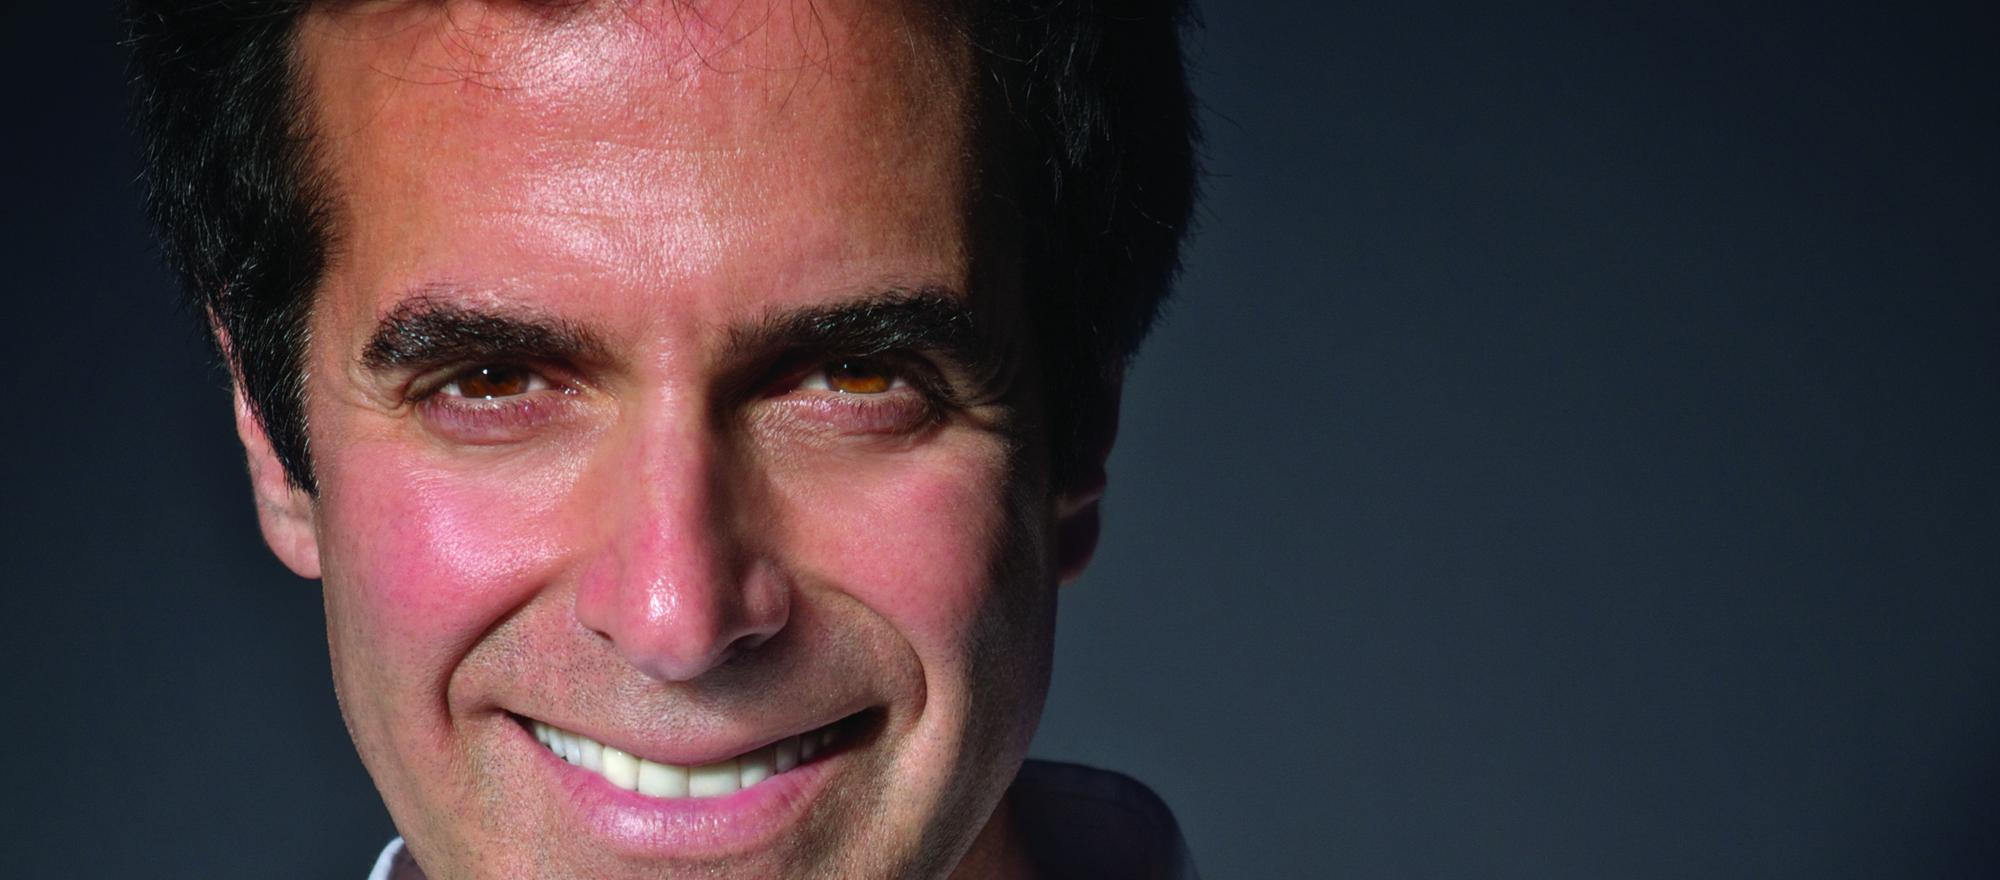 """We have so much unhappiness in the world,"" says David Copperfield, ""and people need to dream and be transported. Music does that, movies do that, and magic does that."" (Photo: Courtesy of David Copperfield)"